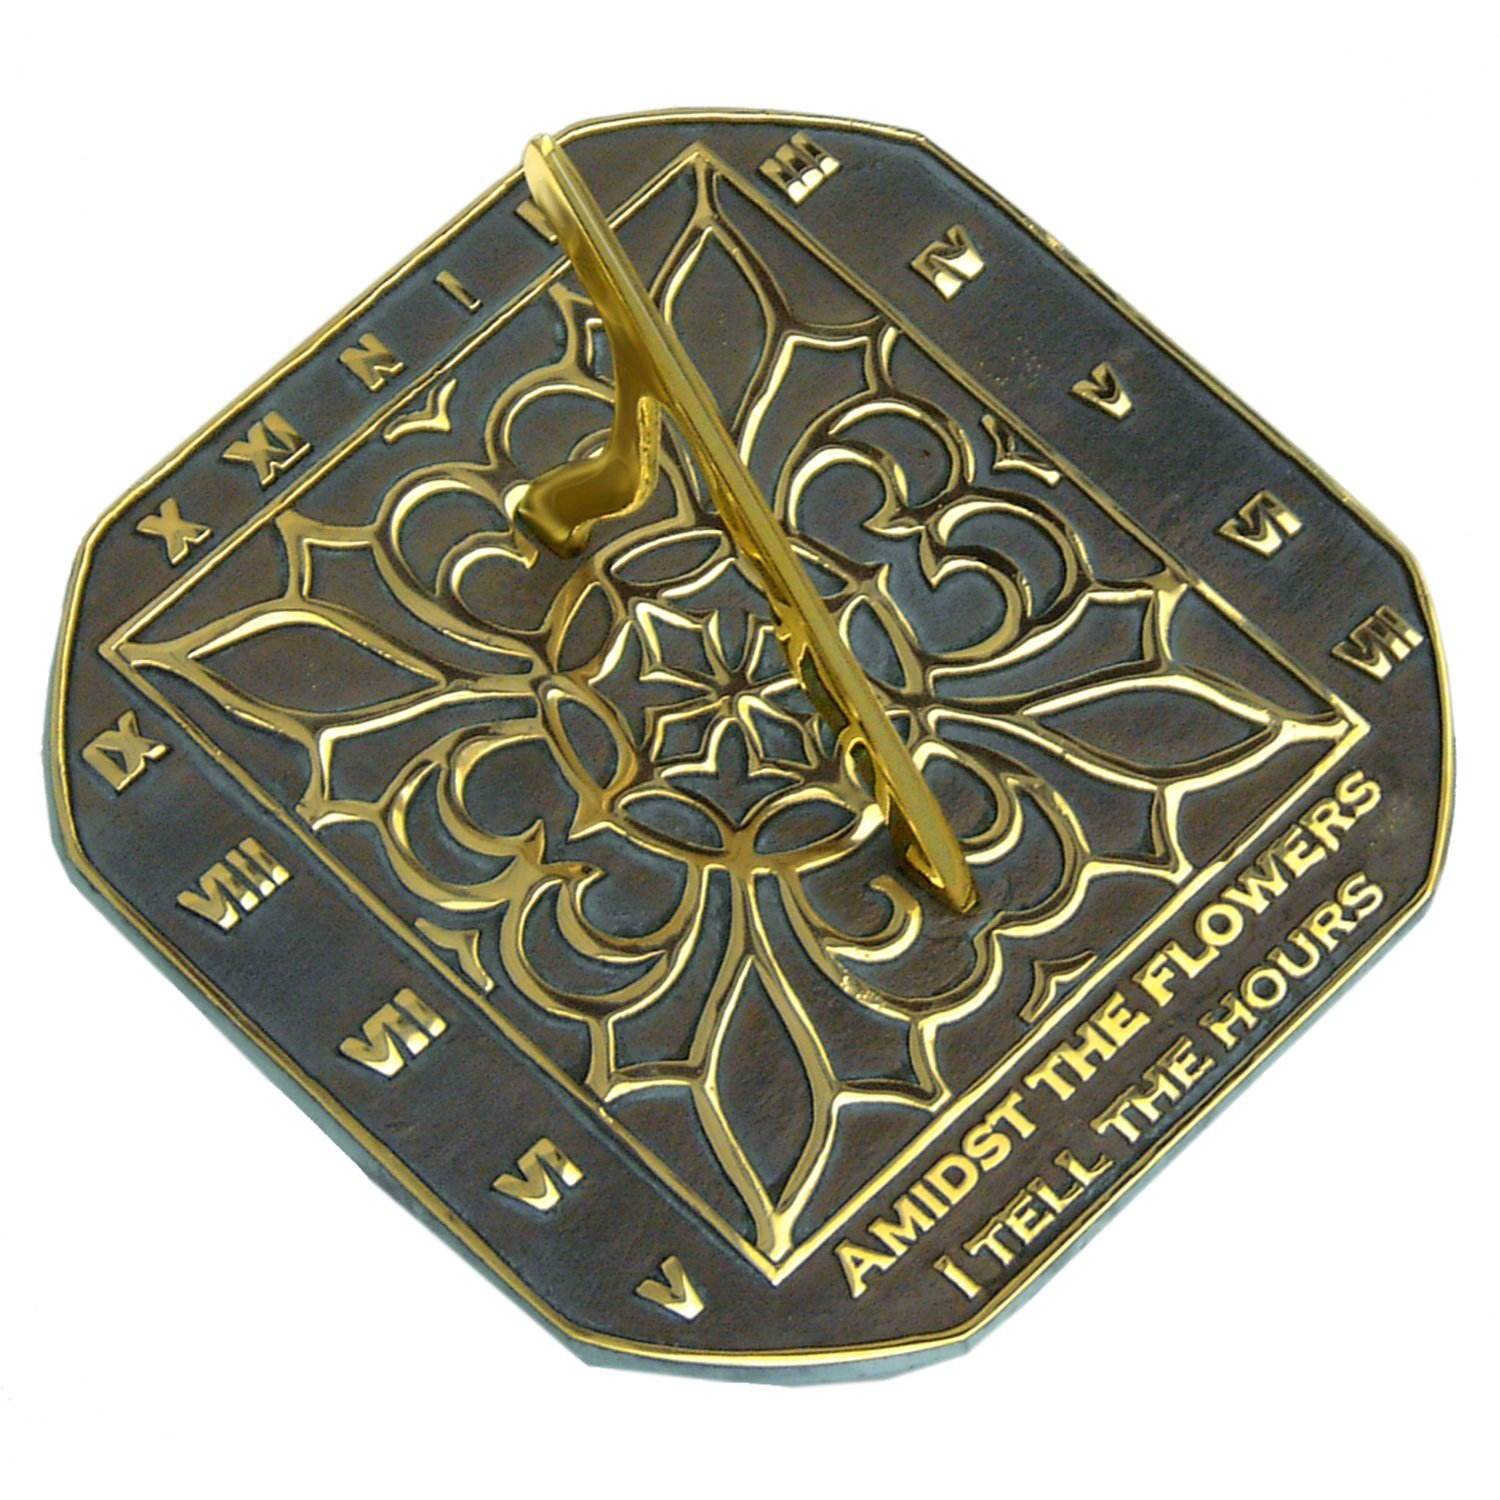 Rome 2375 Romanesque Sundial, Solid Brass with Verdigris Highlights, 8.5-Inch Diameter